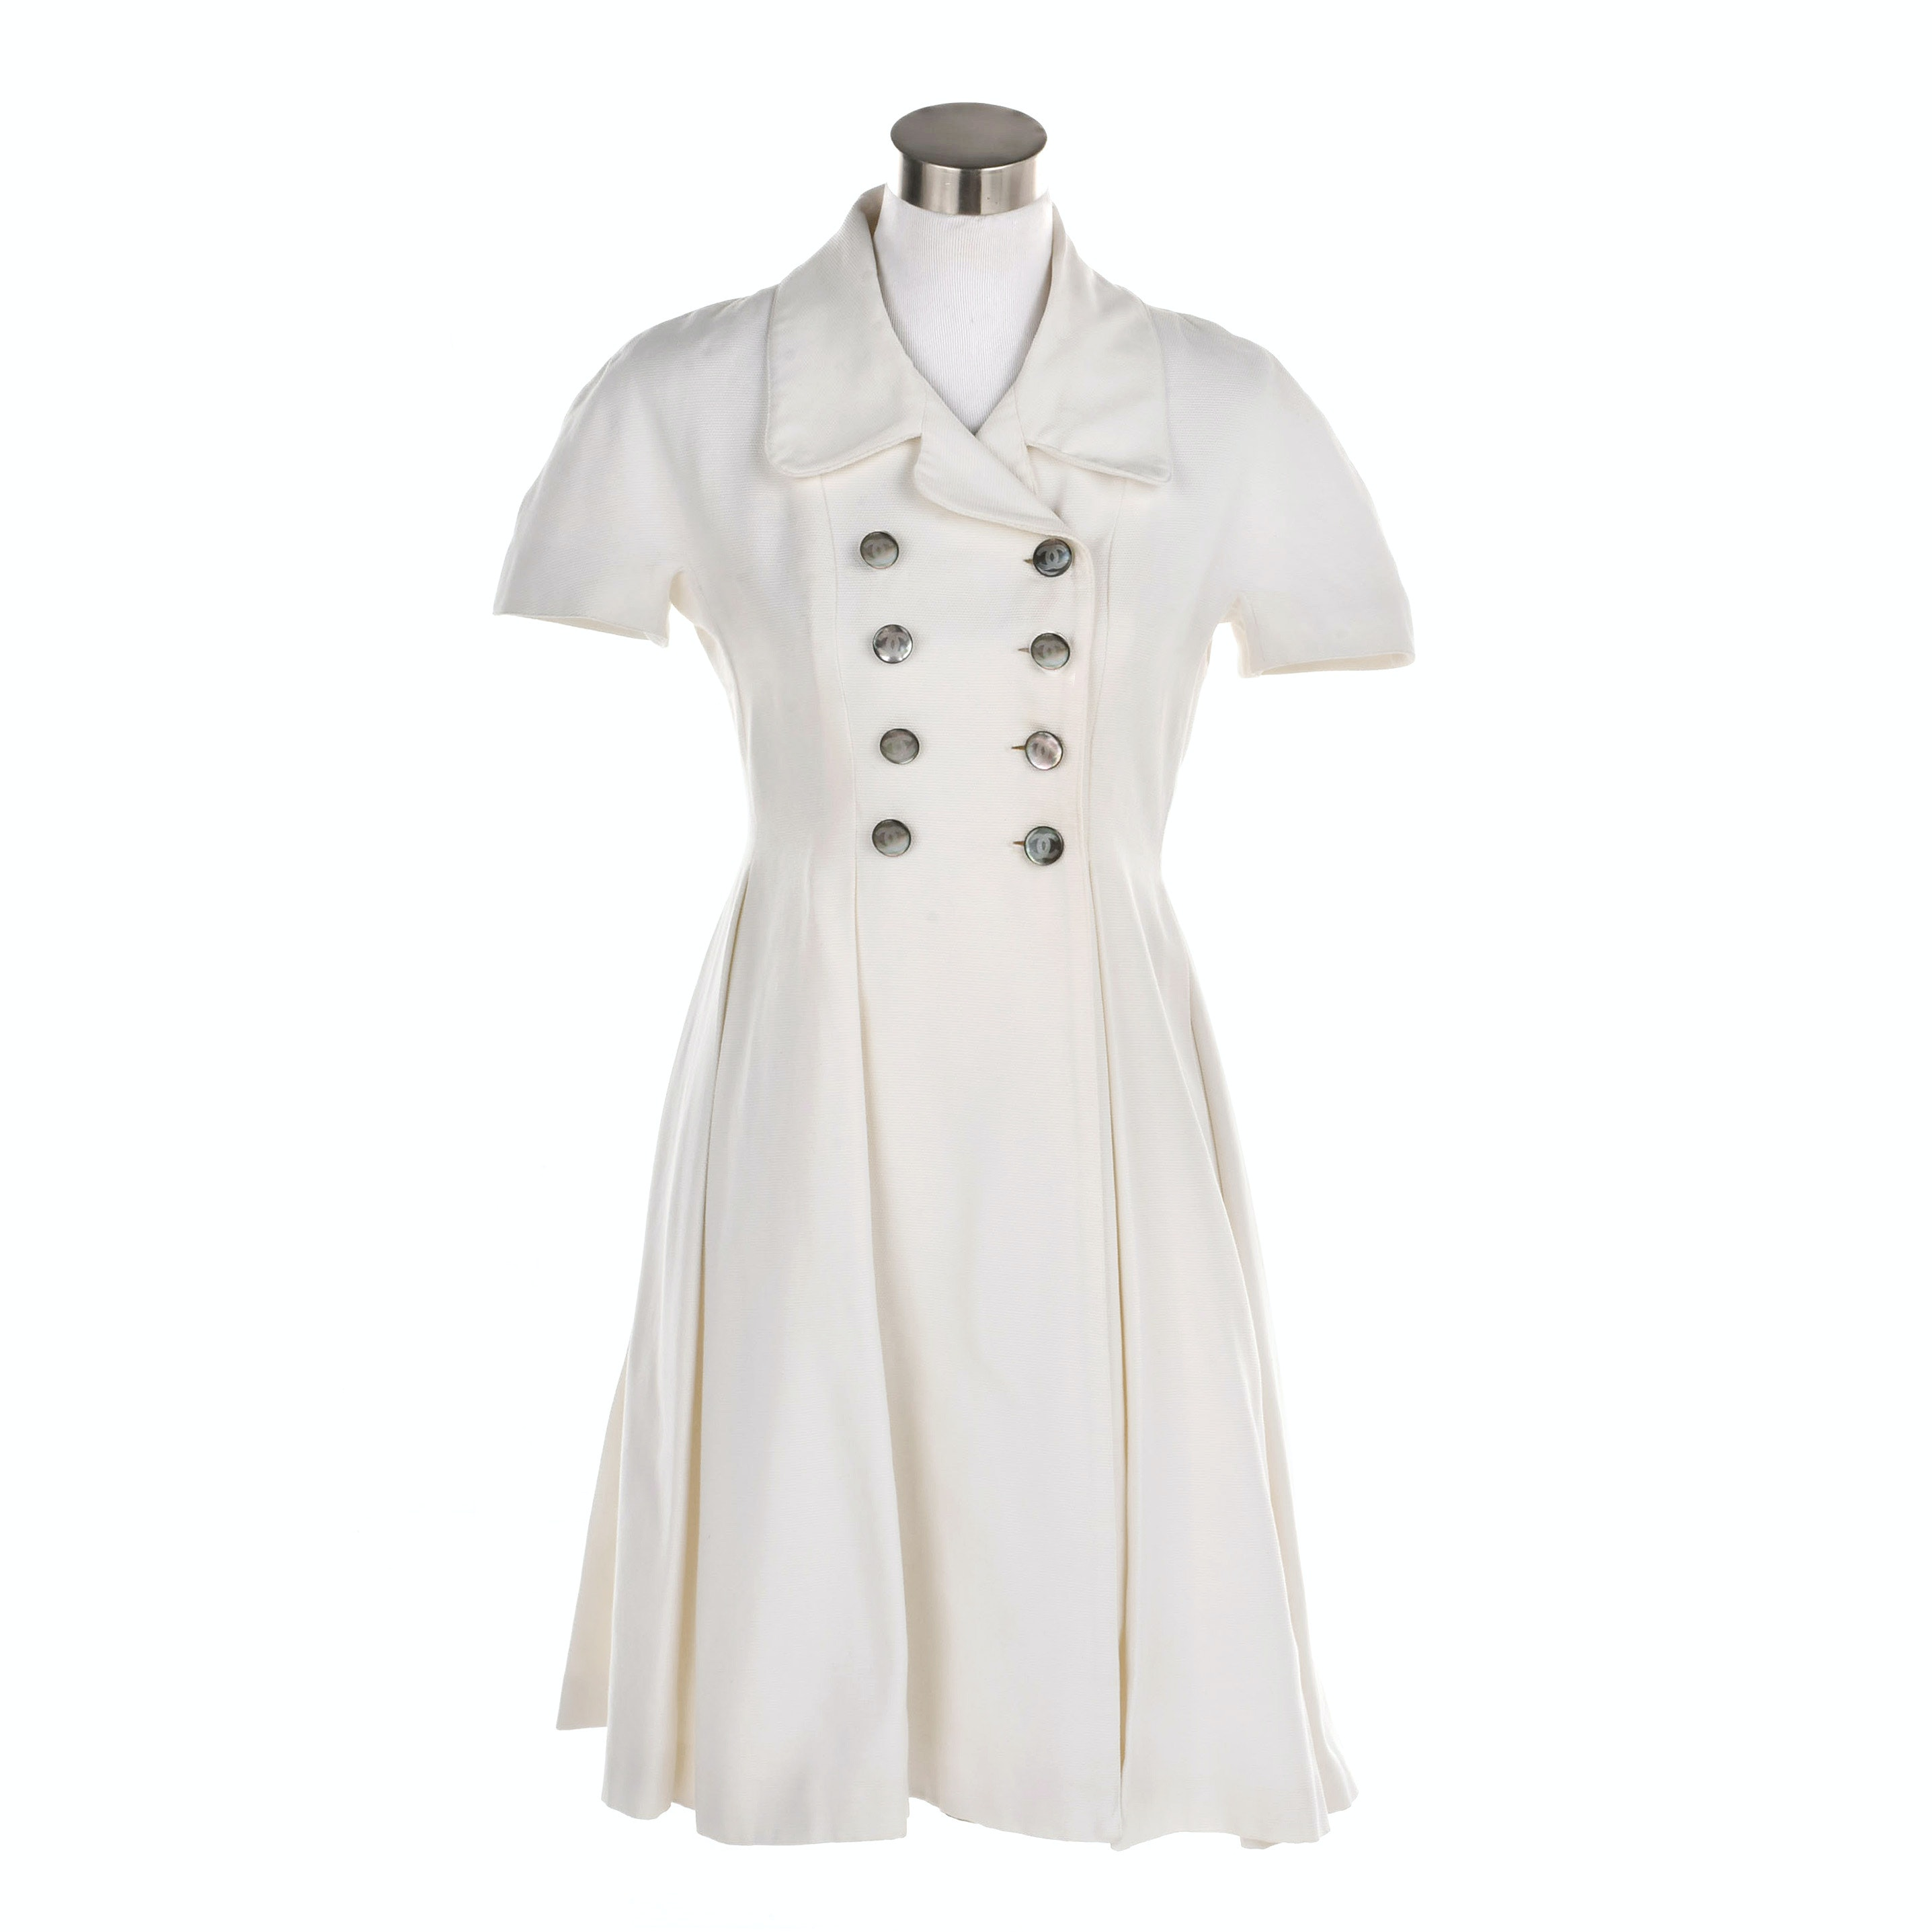 Vintage Chanel Boutique Off-White Double Breasted Cotton Dress